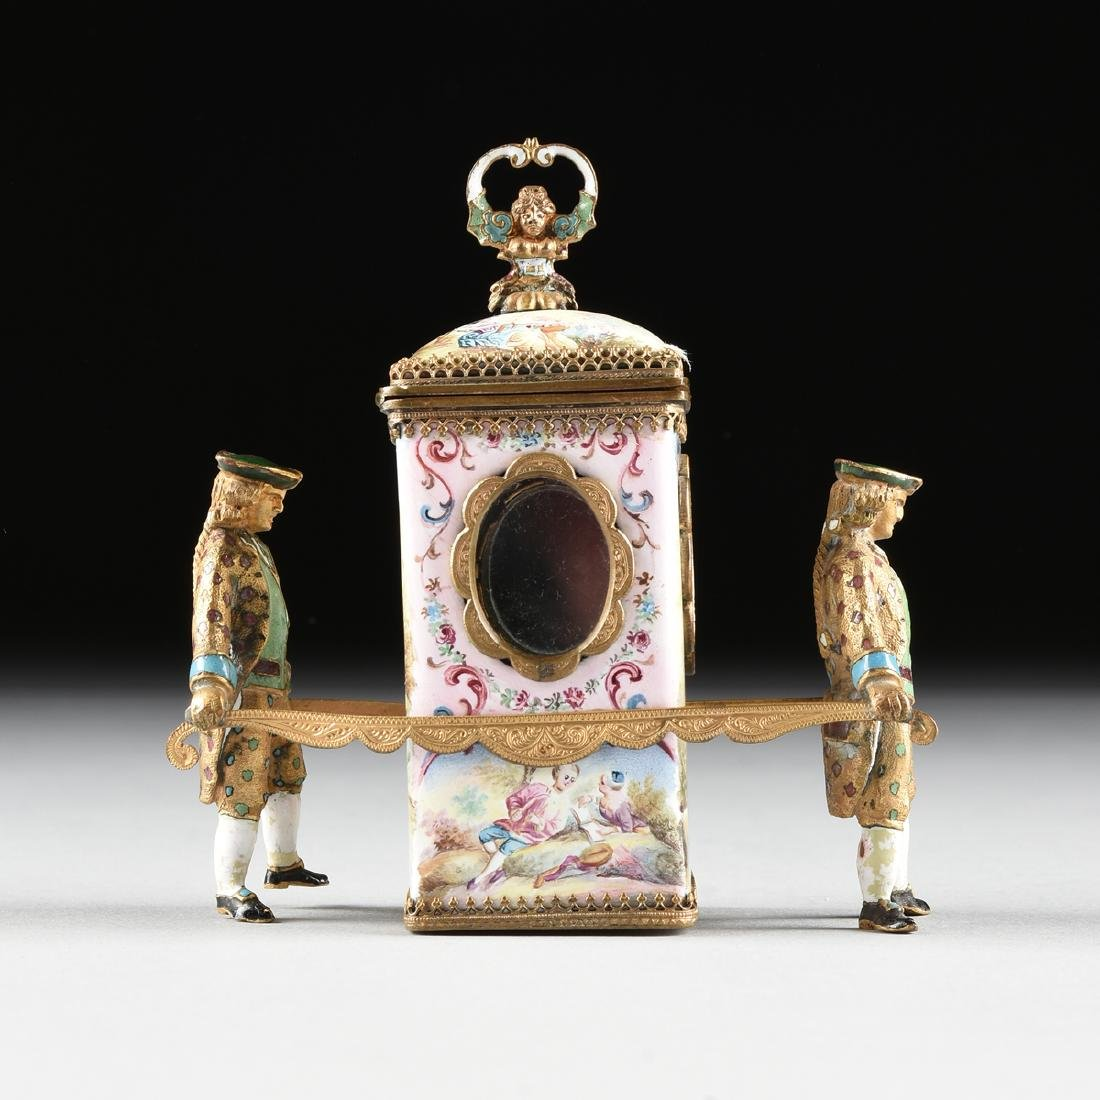 A VIENNESE MINIATURE FAUX JEWELED AND ENAMEL SEDAN - 2